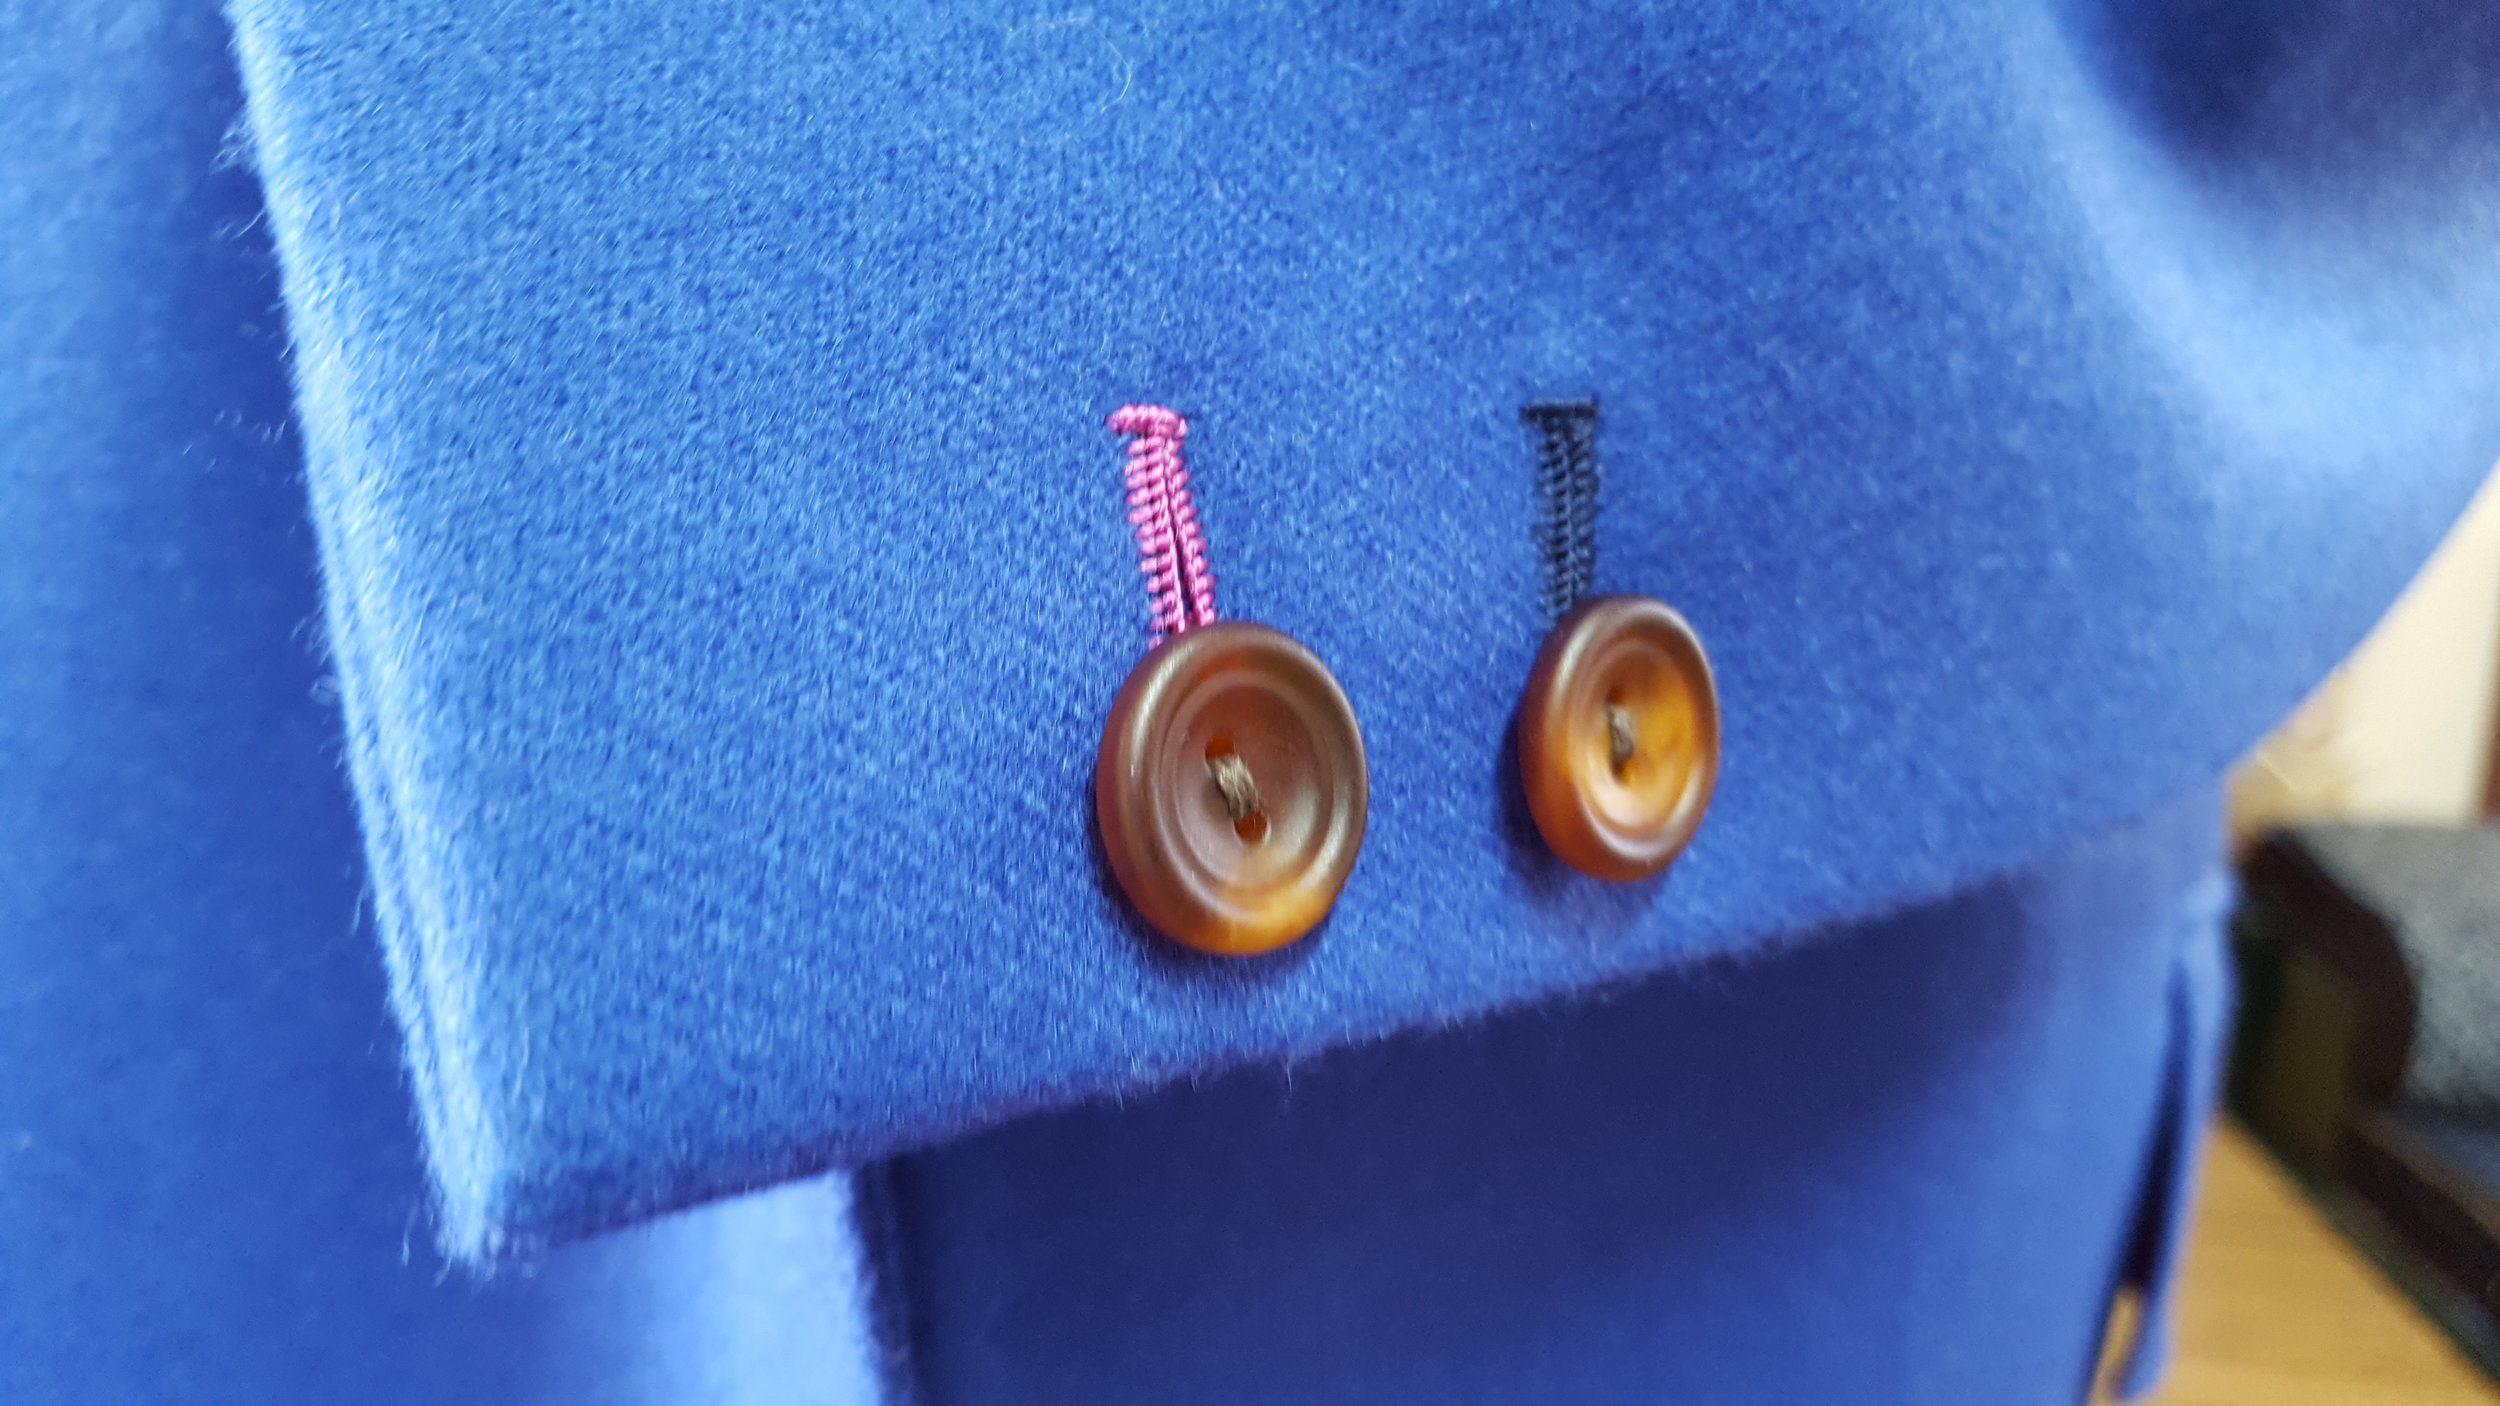 We decided to go with a handmade buttonhole (with contrasting thread to match the lining). Factory made jackets will usually have a machine made button hole but a handmade buttonhole is something that little bit special.